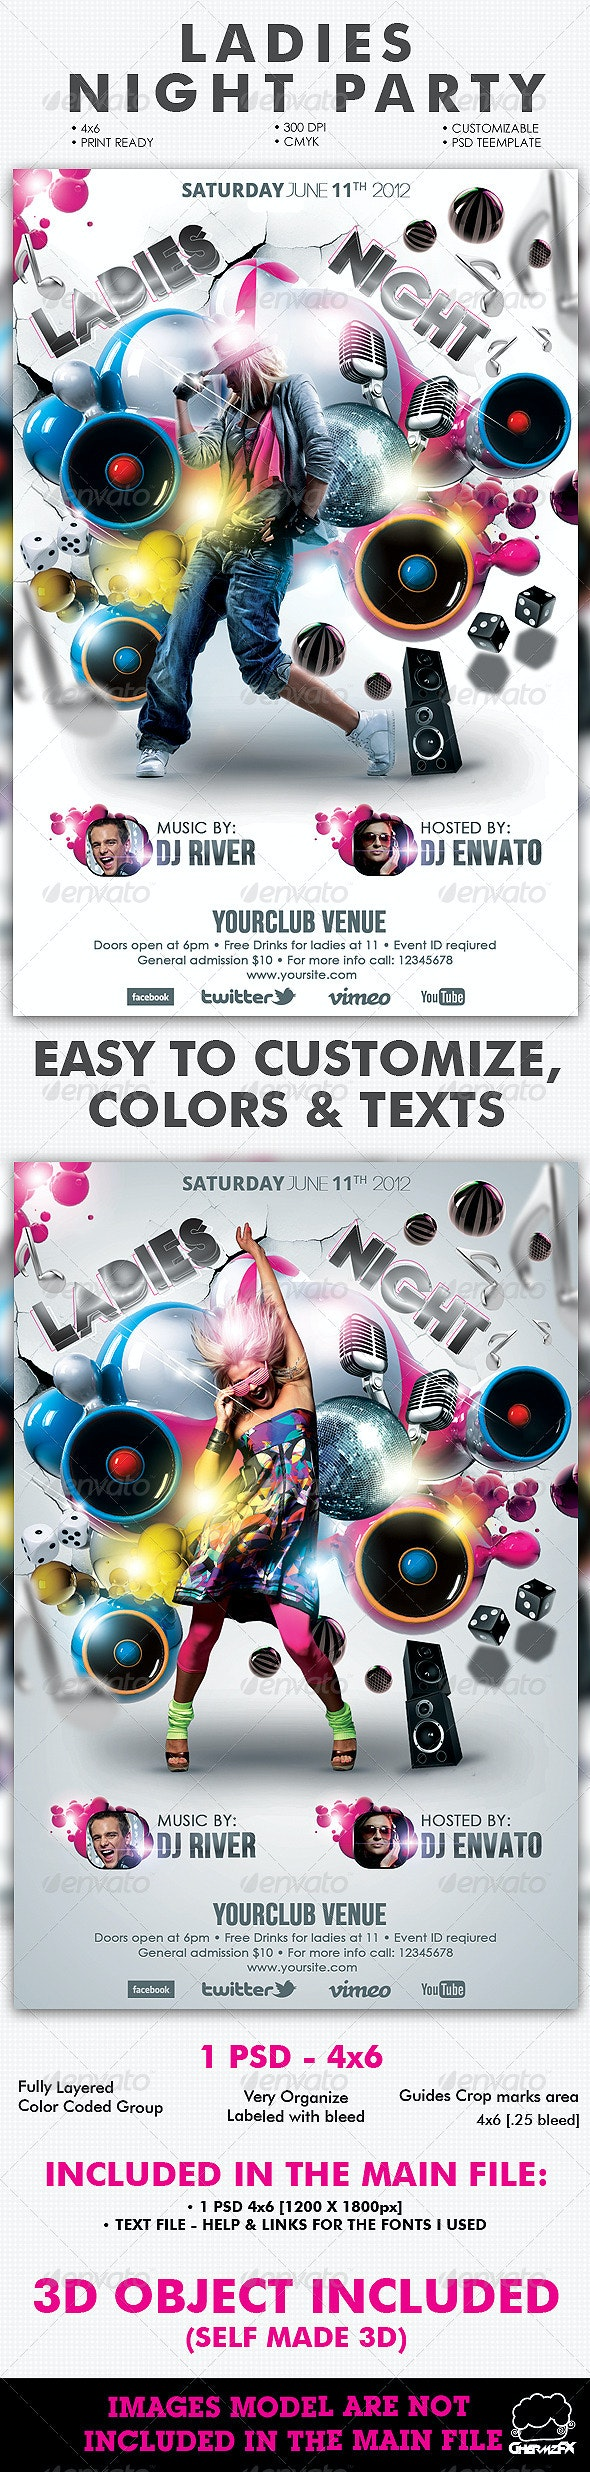 Ladies Night Party Flyer Template - Flyers Print Templates